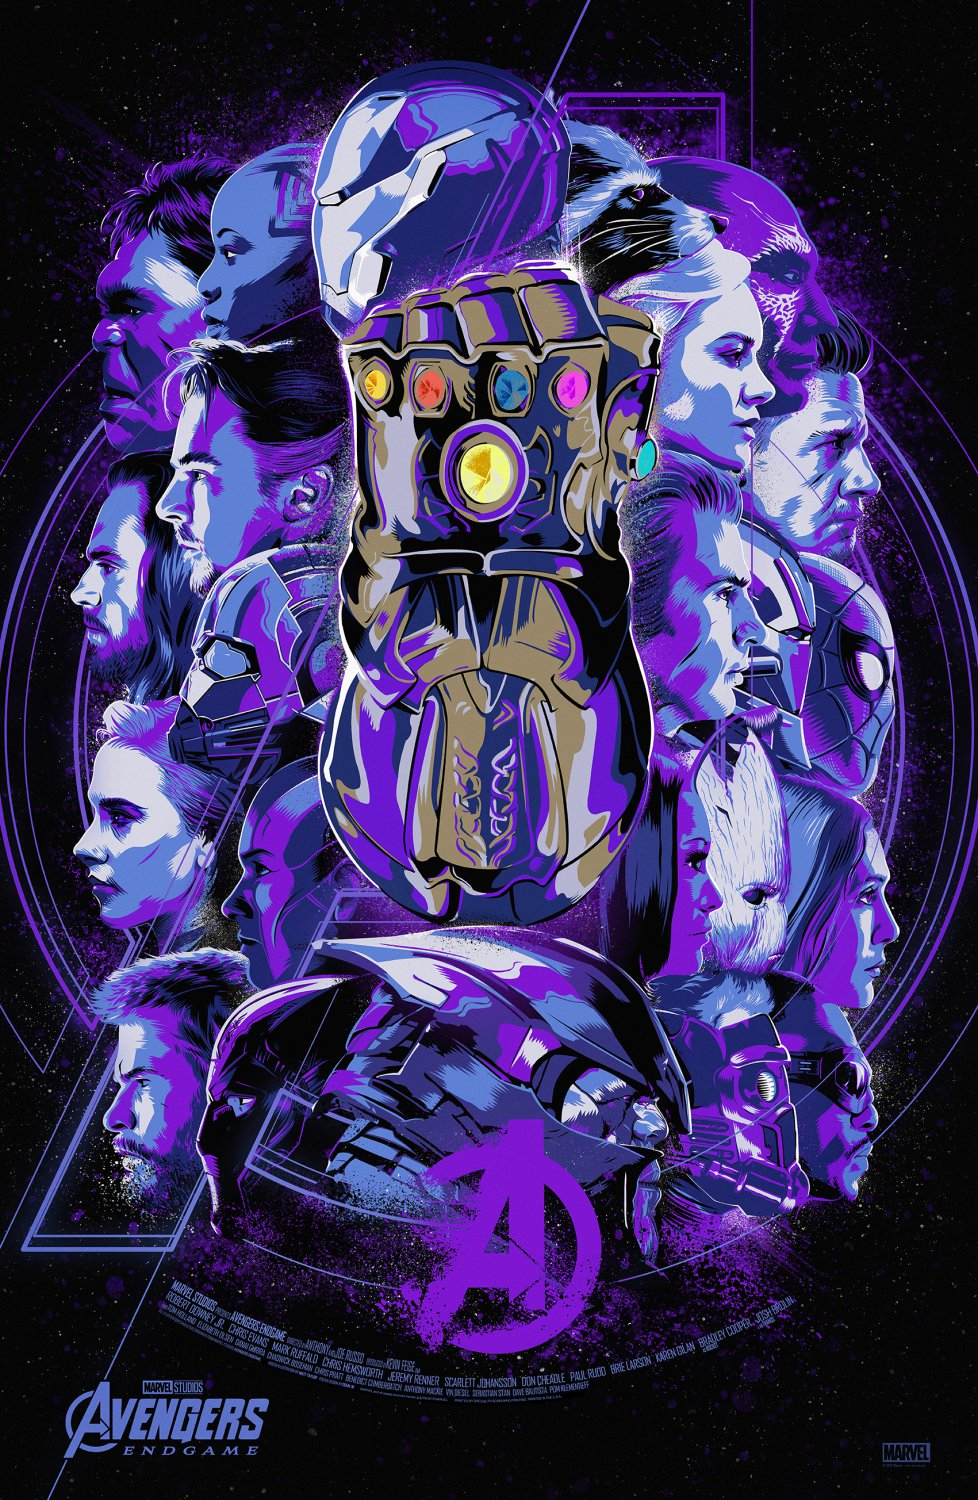 Avengers Endgame Poster 18x24 inches